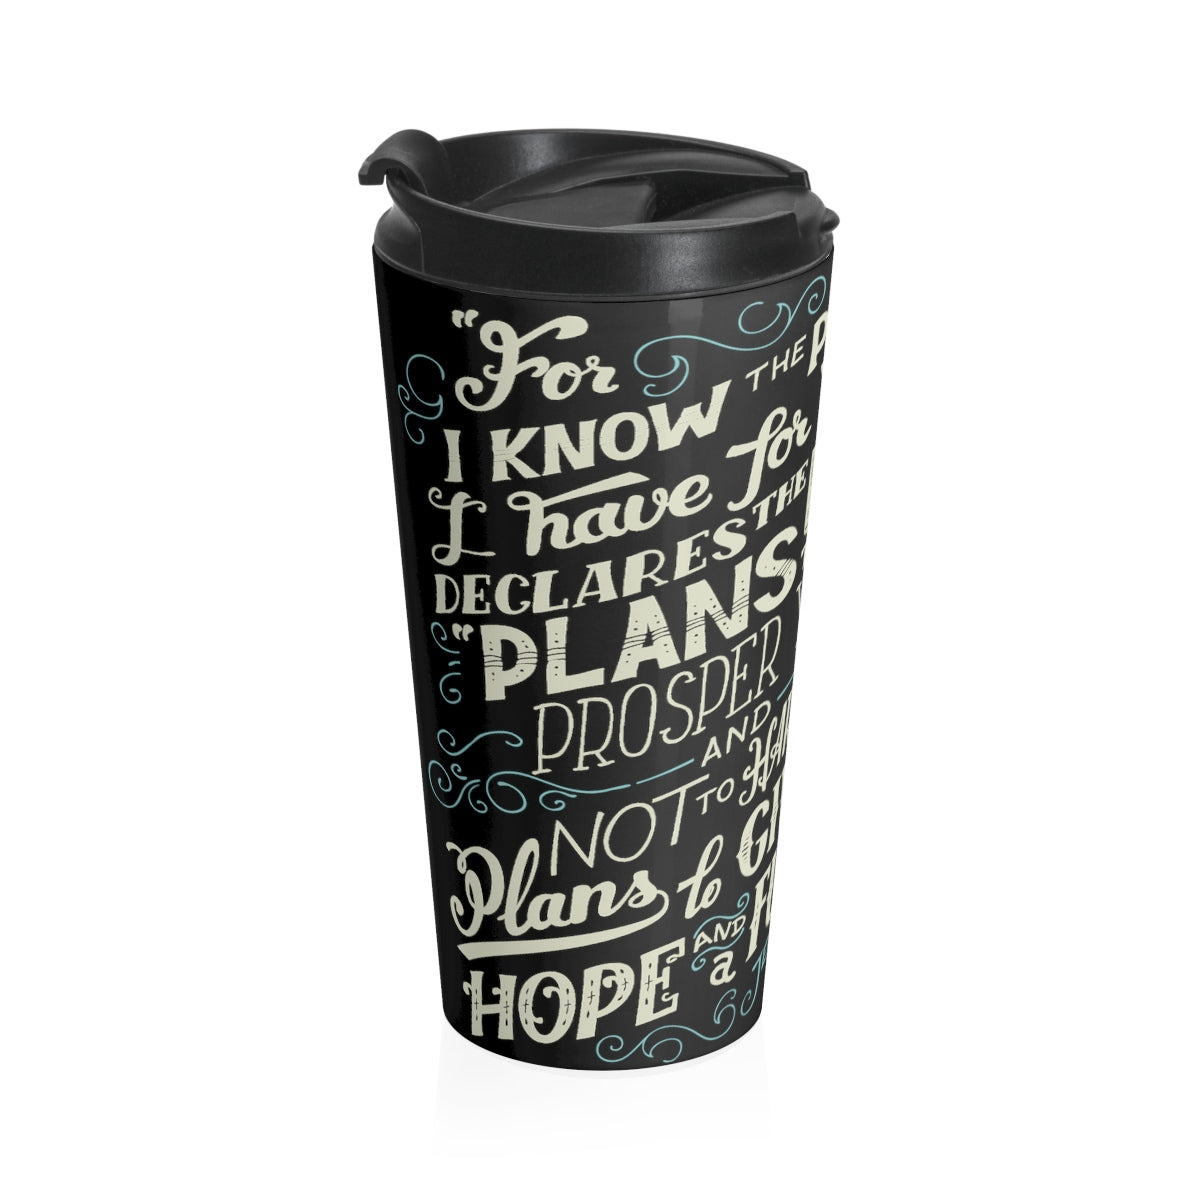 Jeremiah 29:11 Stainless Steel Travel Mug